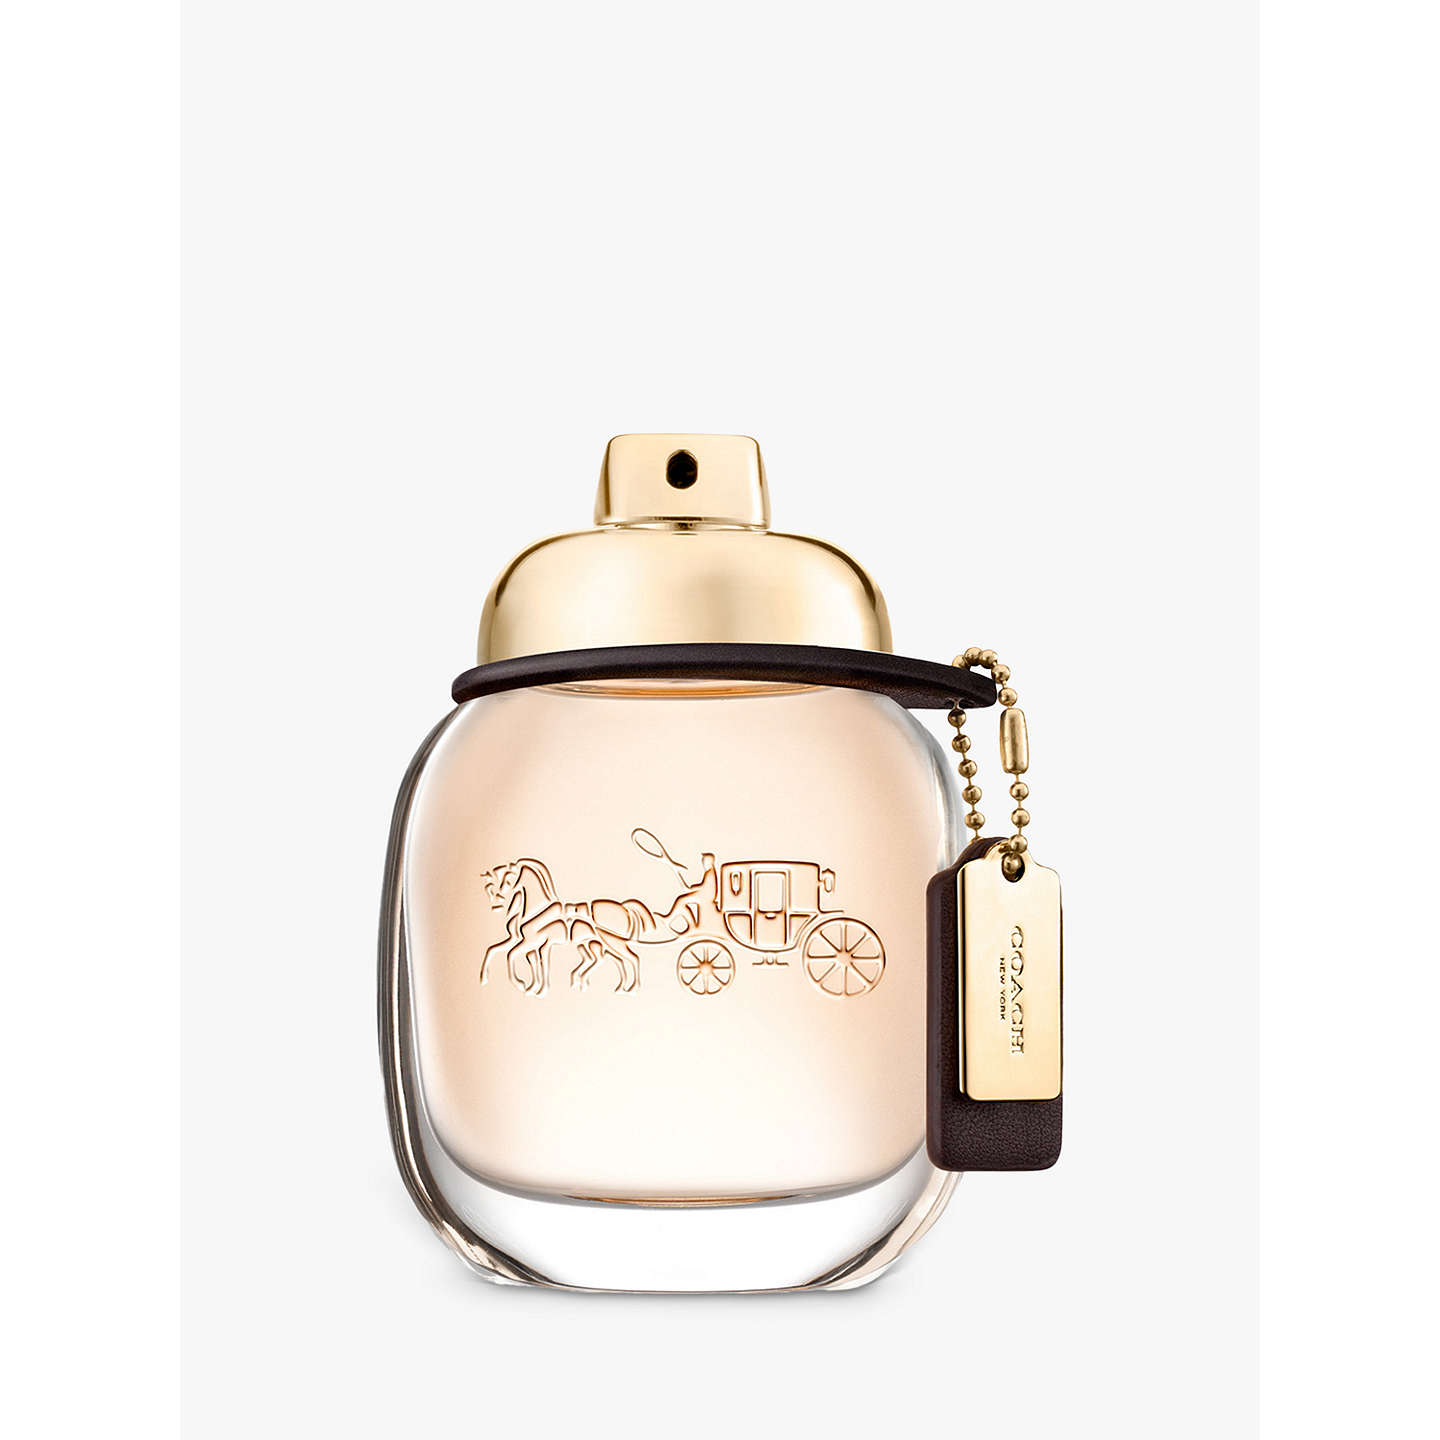 BuyCoach The Fragrance Eau de Parfum, 30ml Online at johnlewis.com